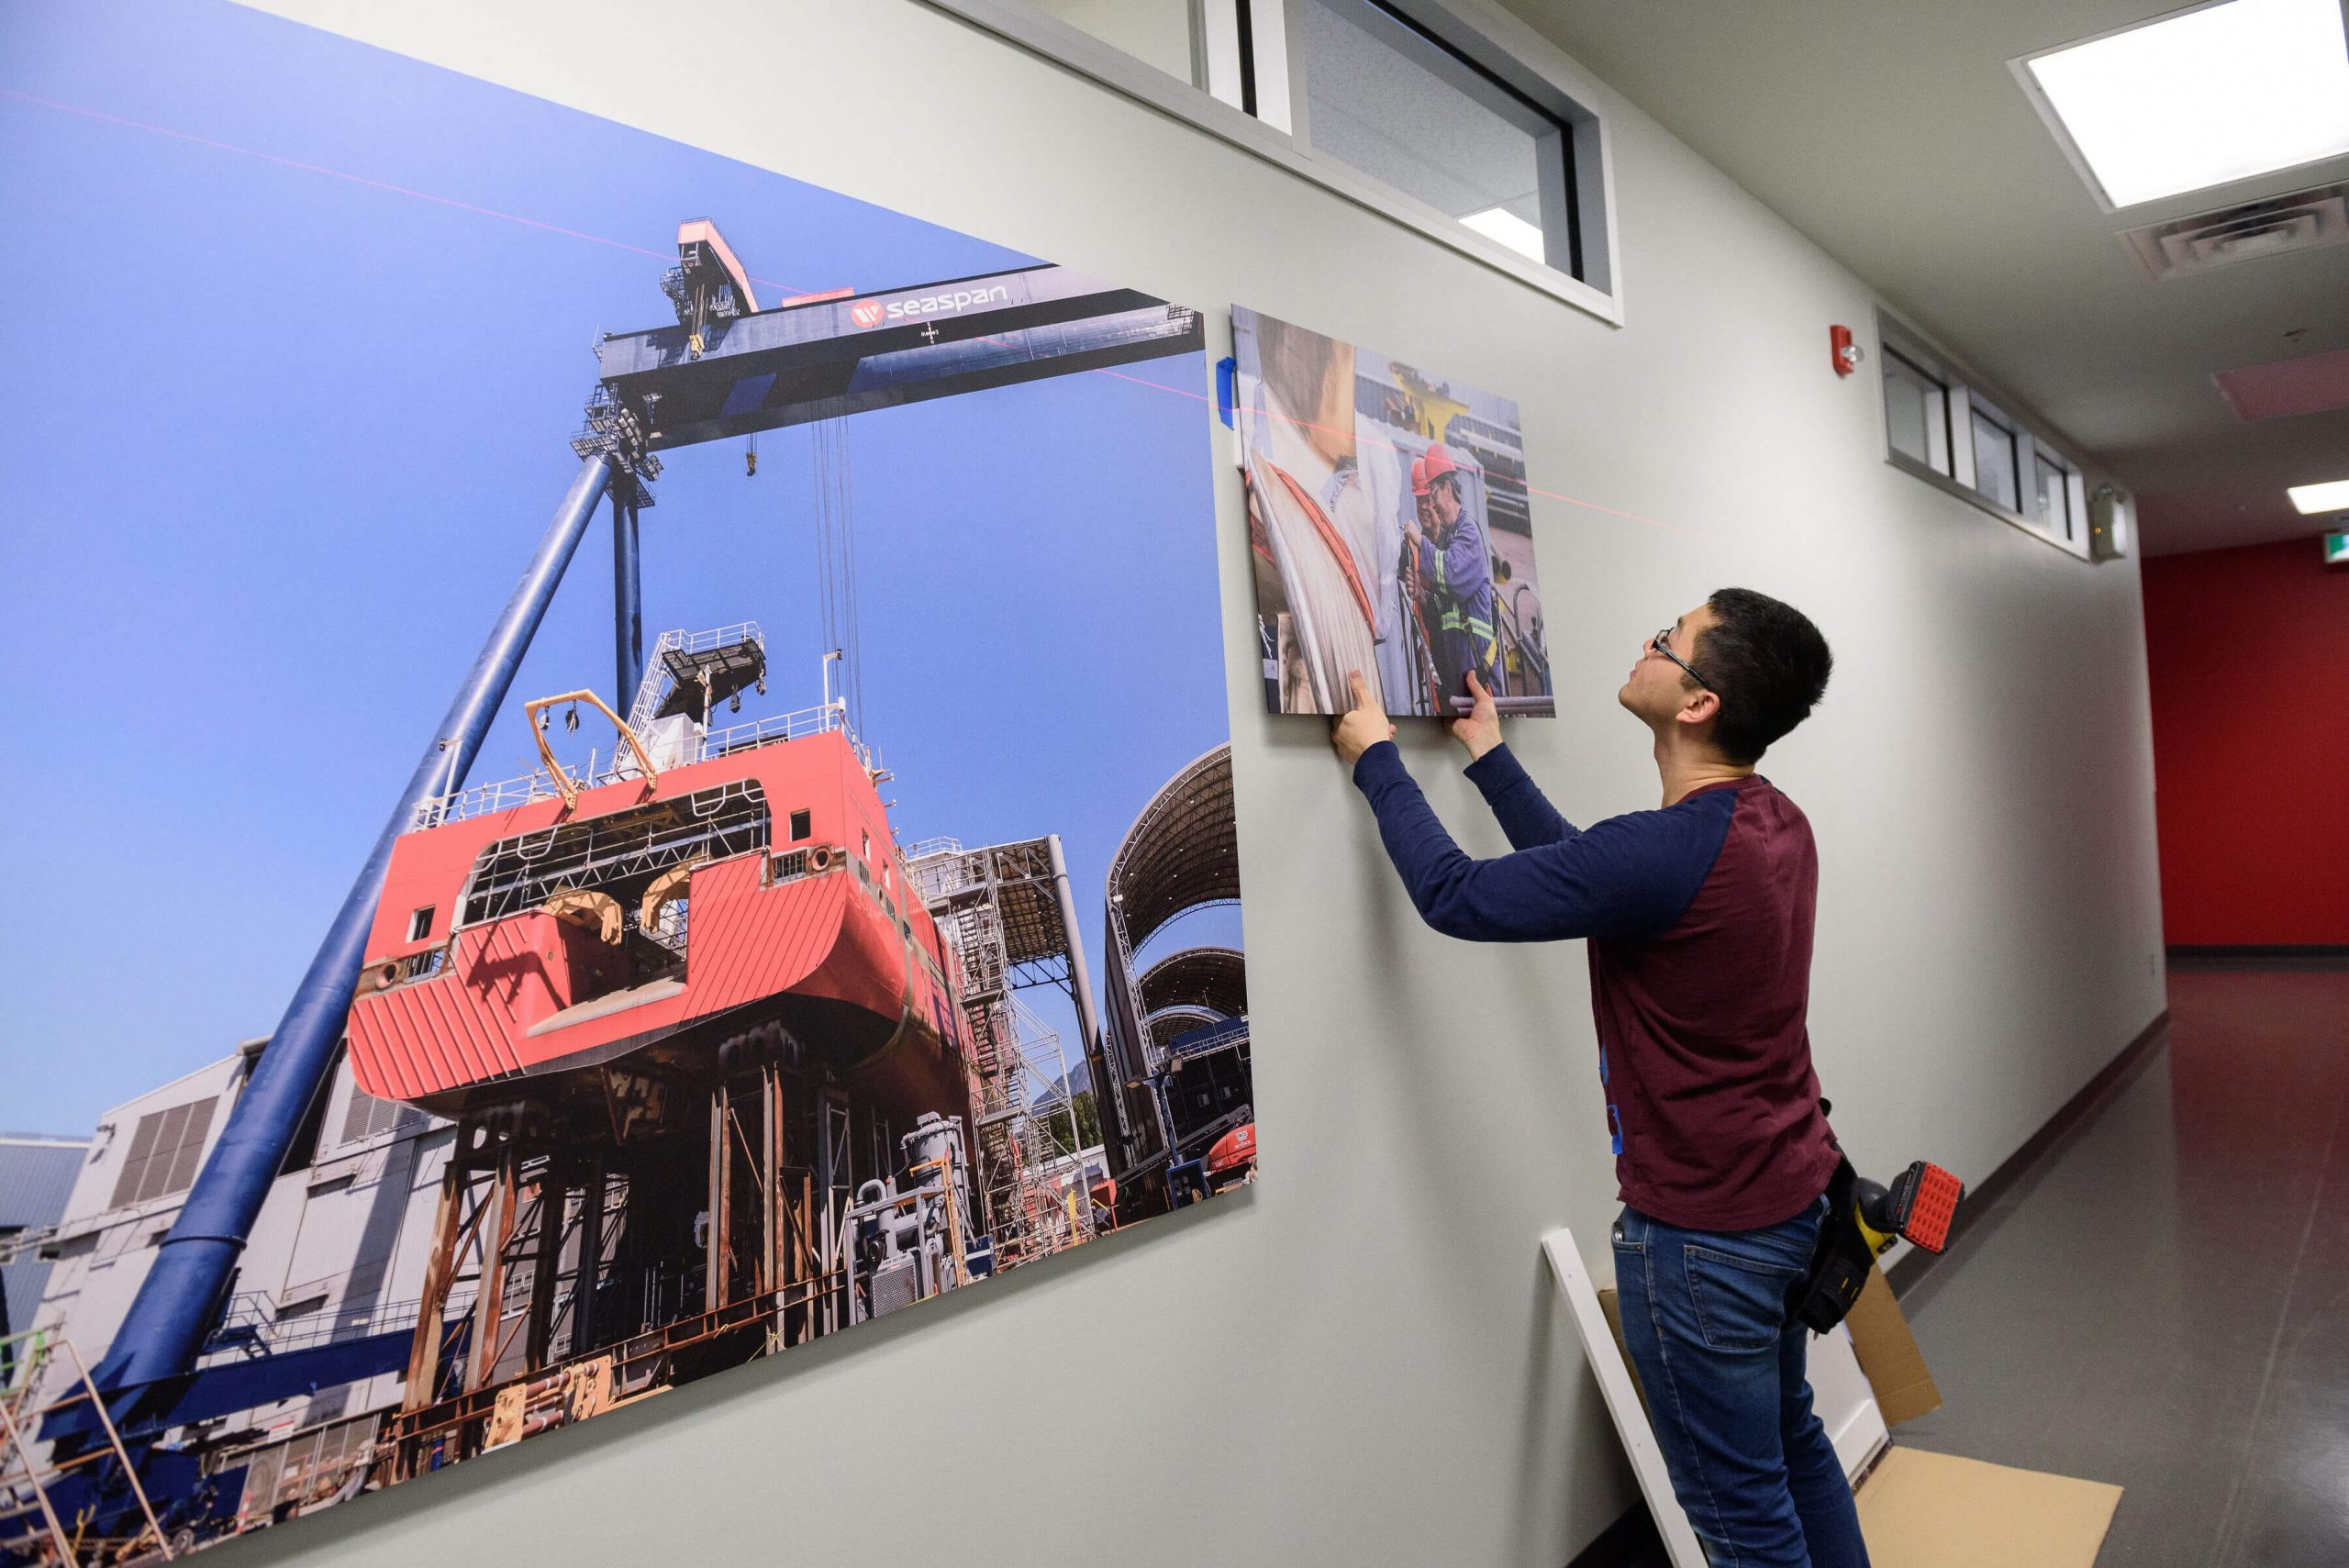 Man installing a printed image on a wall